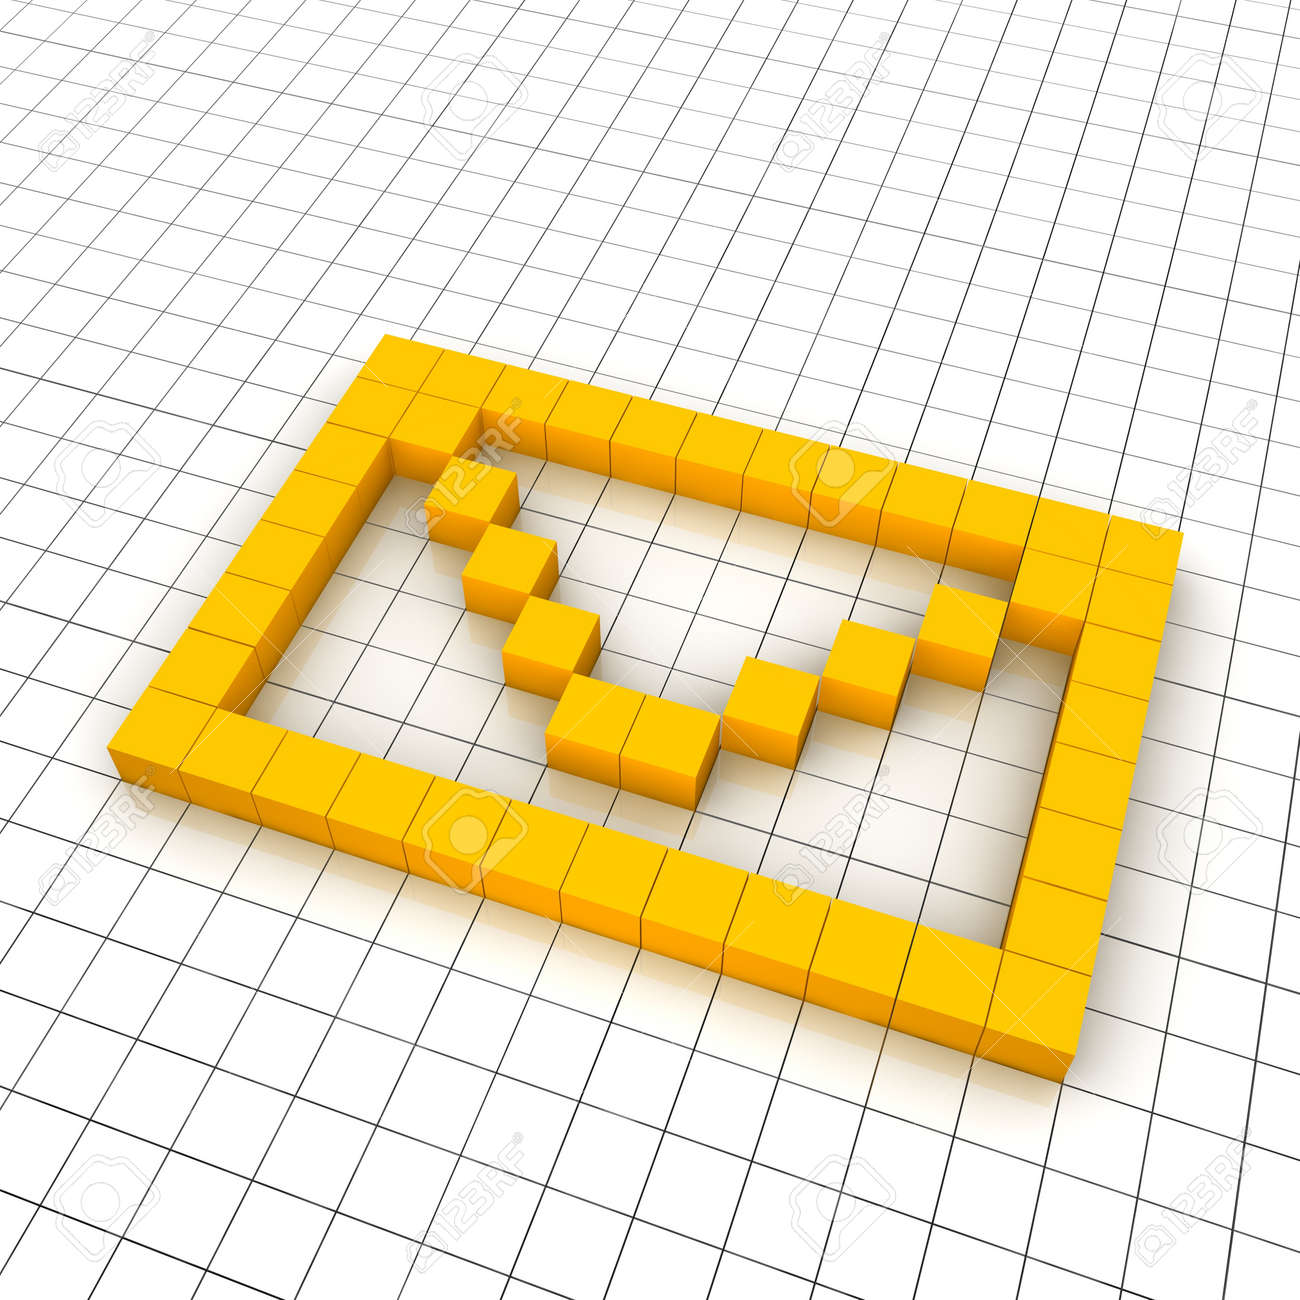 3d mail envelope icon in grid. Rendered illustration. Stock Photo - 7622657